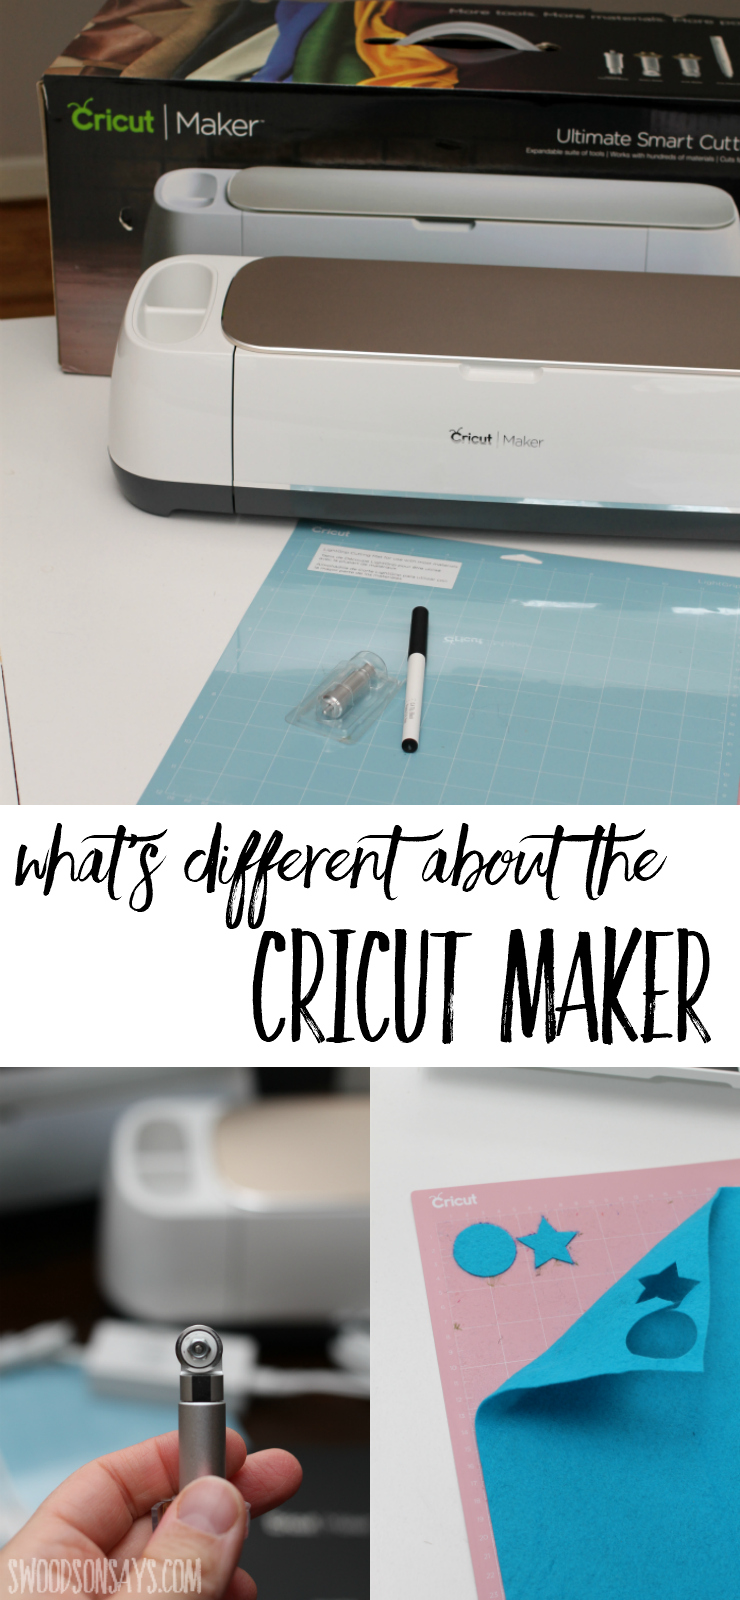 Wondering what is the difference between the Cricut Maker and older models? Looking for a thorough Cricut Maker review? Check out this post sharing the pros and cons of the new machine, how it compares to the Explore Air 2, and see thoughts on the new fabric washable pen. See a test of several types of fabric that it can cut, too! The new digital cutting machine on the block and why you should (or shouldn't) try it out. Sponsored post by Cricut #ad #cricut #cricutmaker